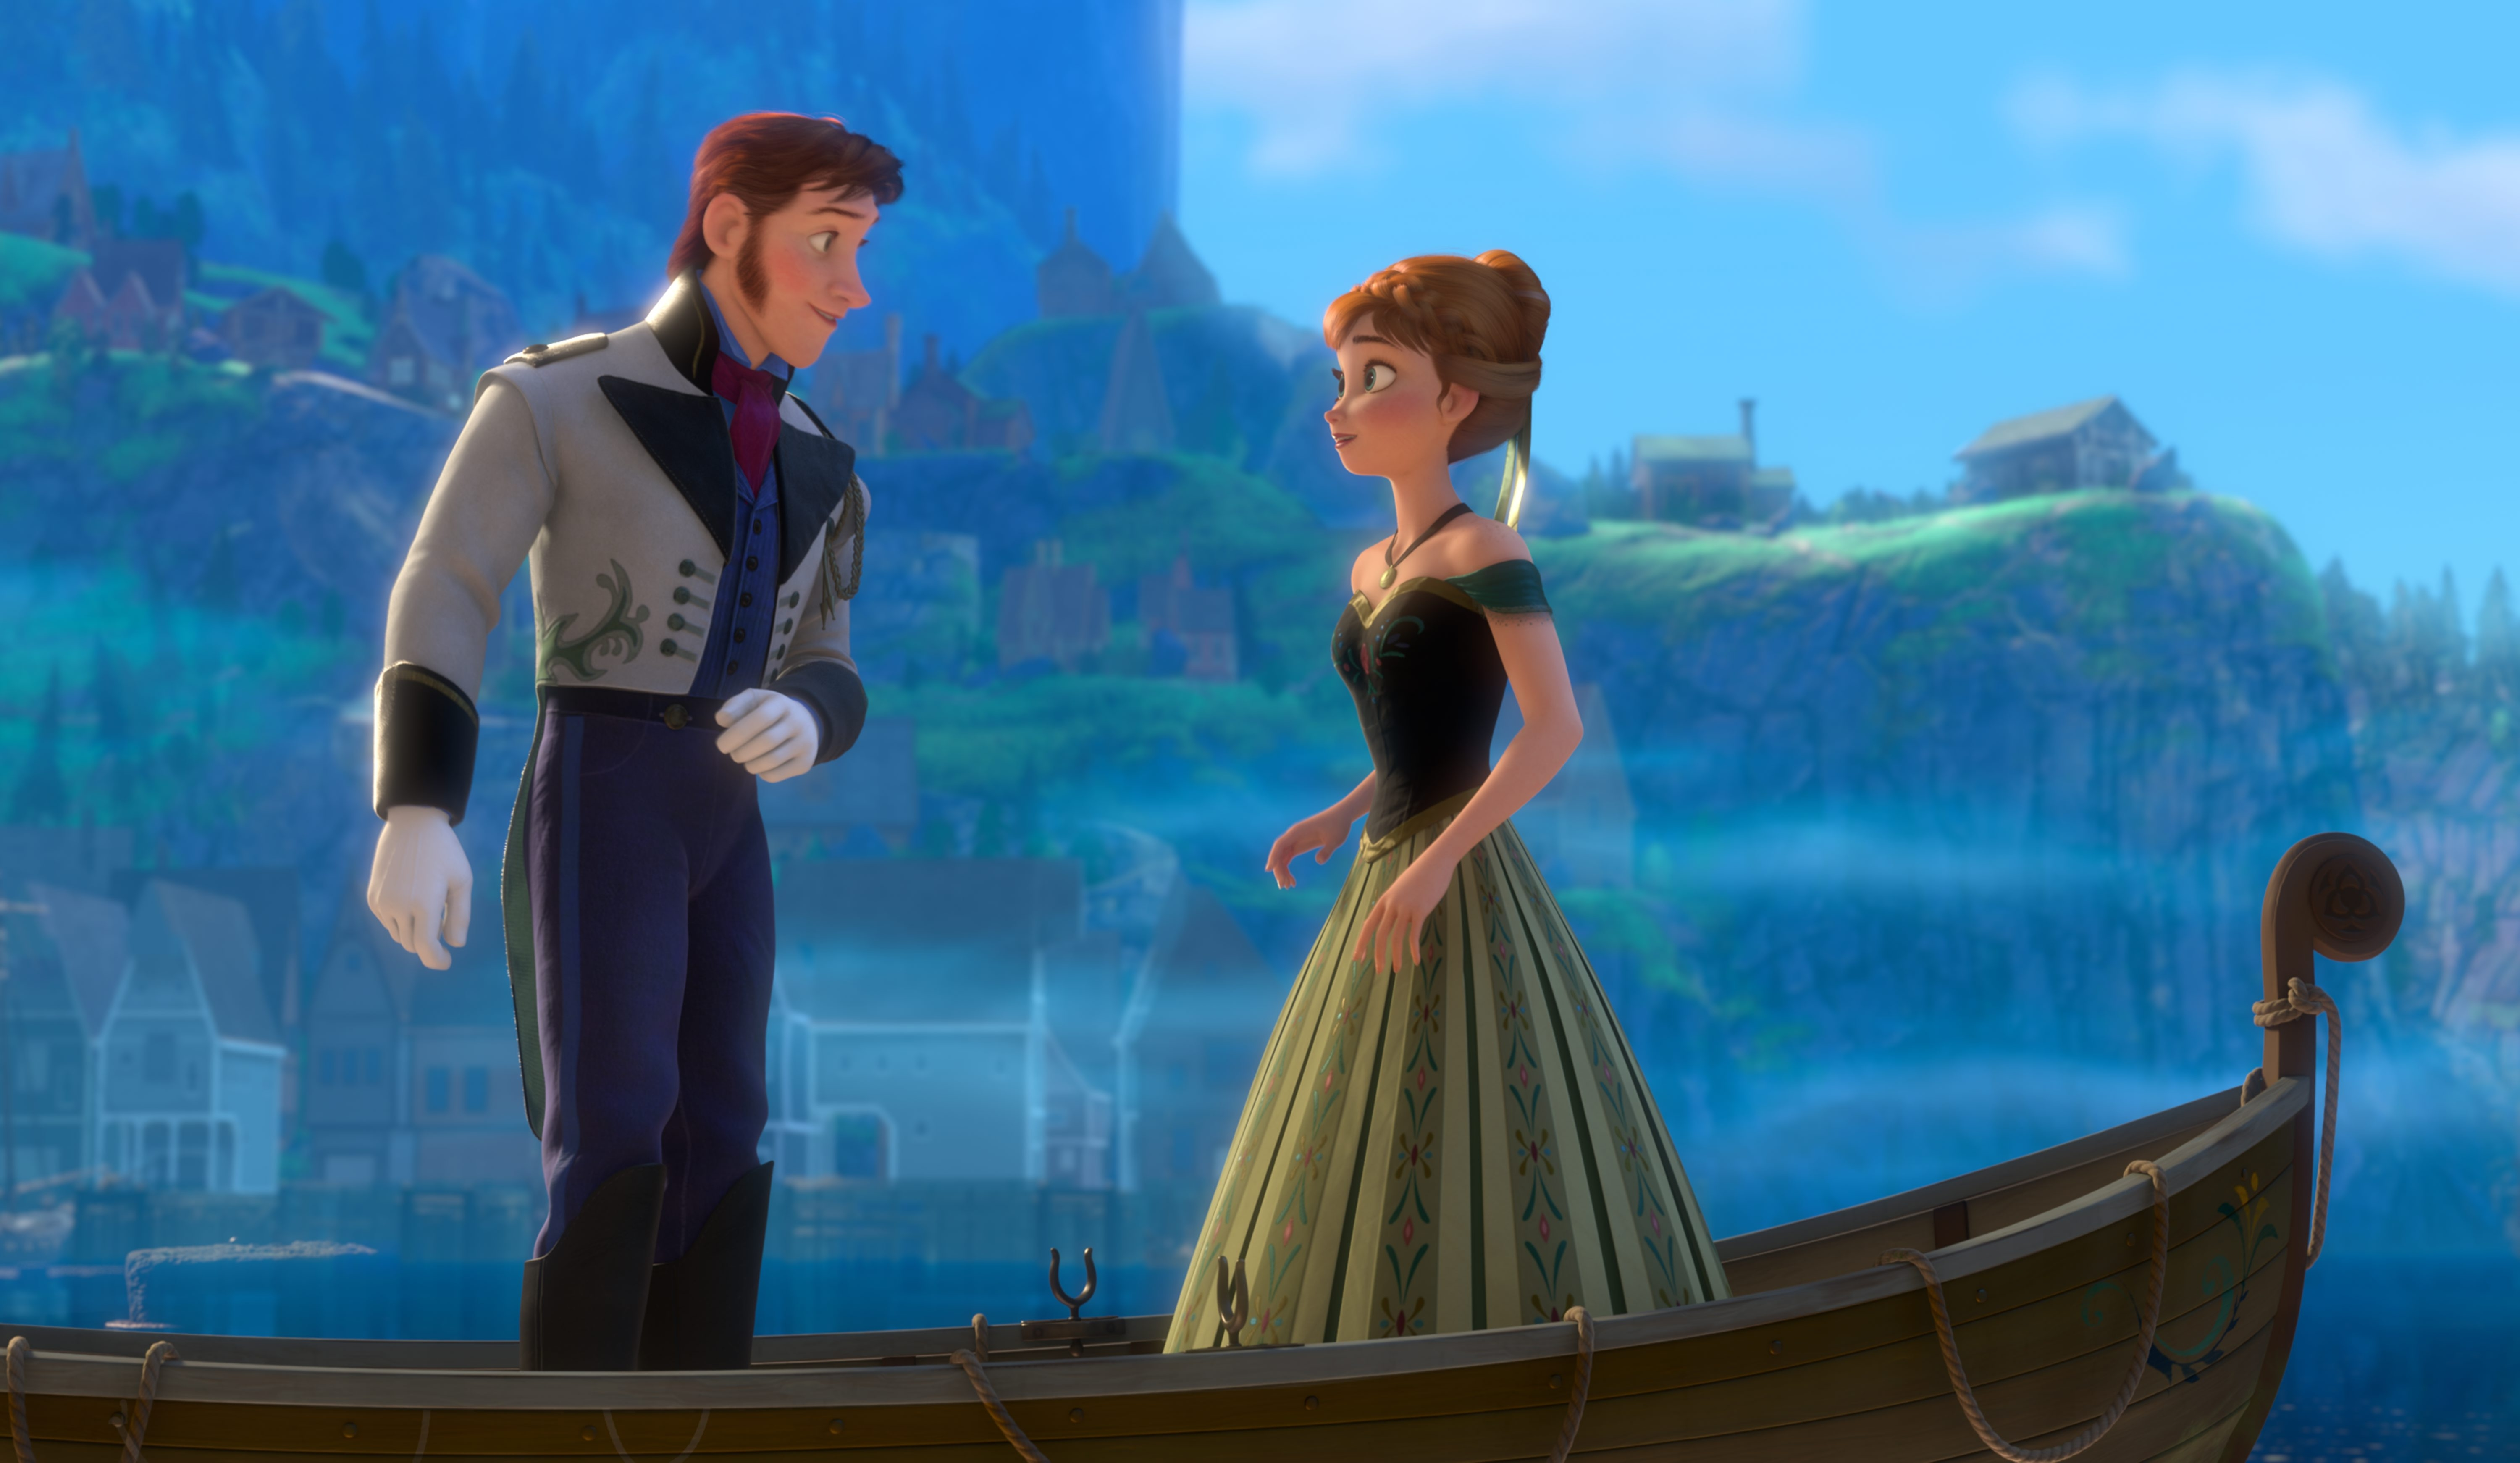 """Hans tries to woo Anna in a scene from Disney's new animated feature """"Frozen."""""""